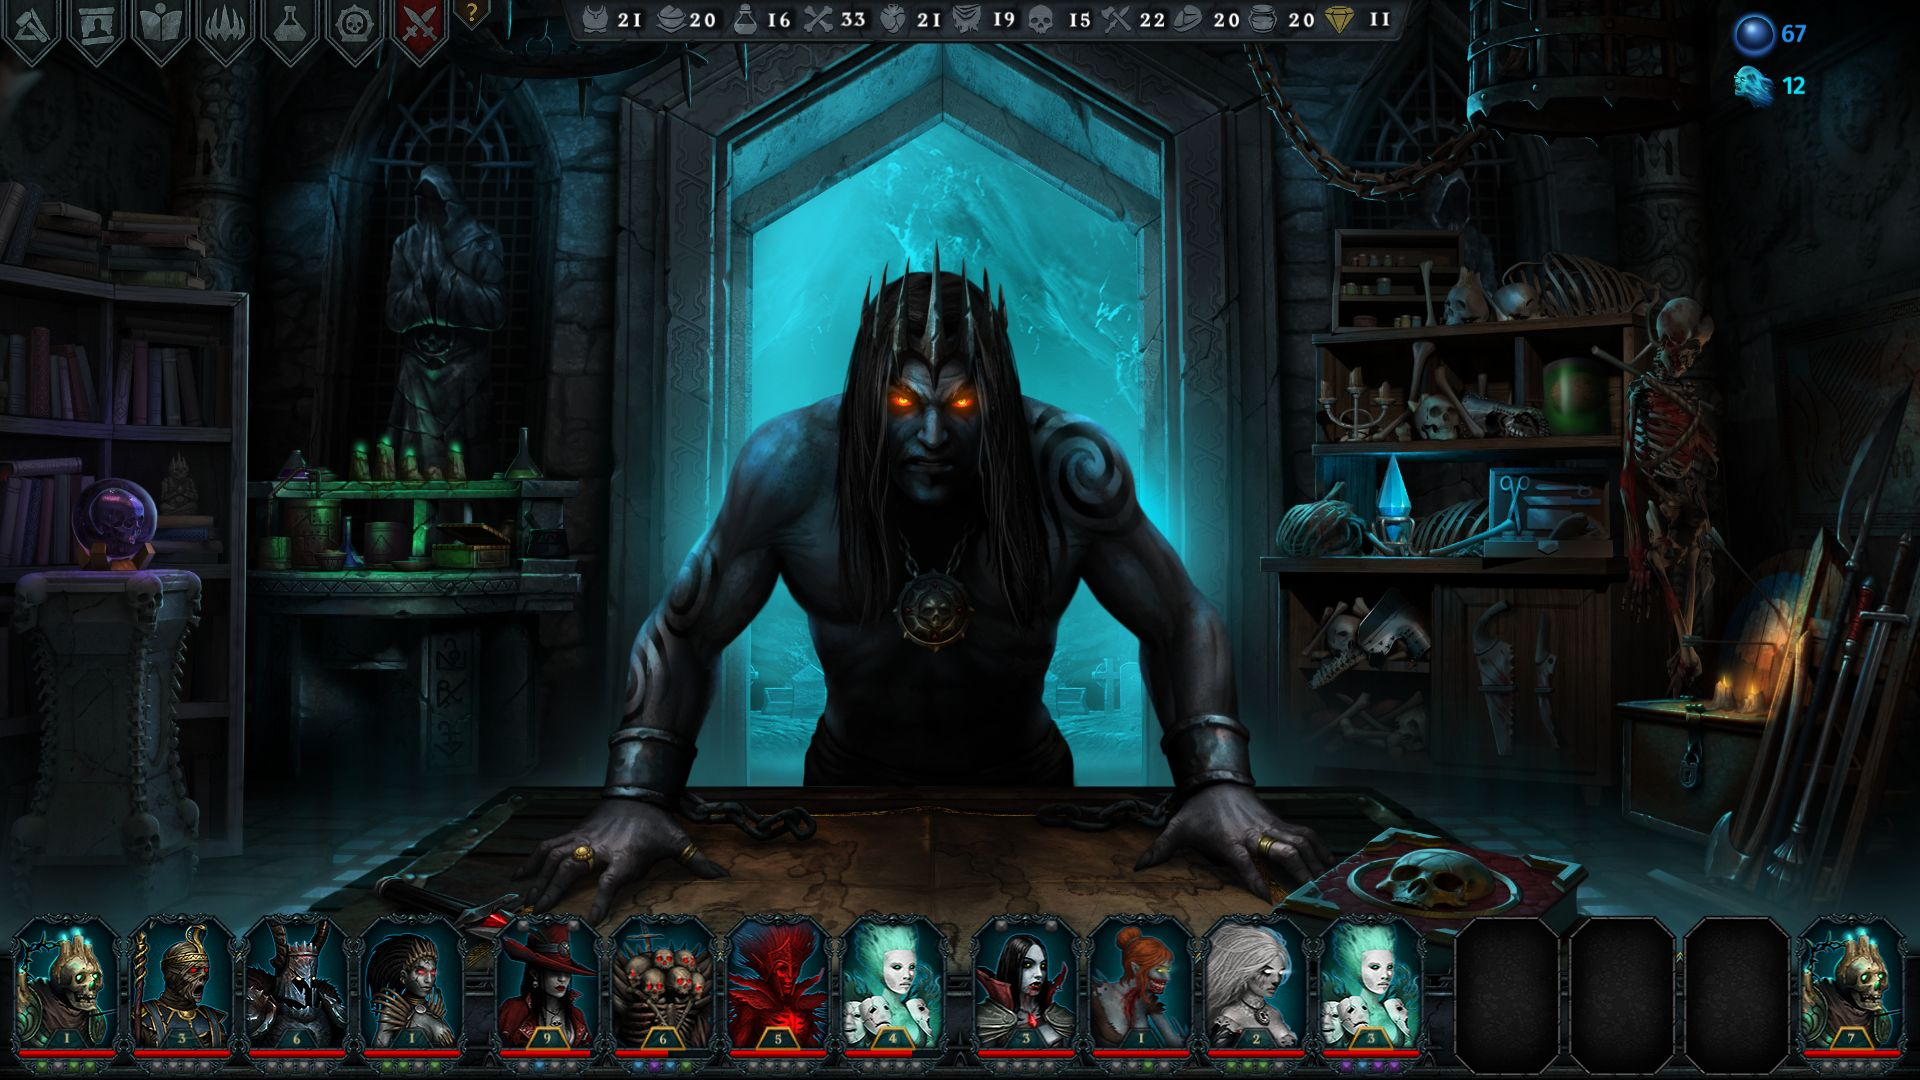 Screenshot from Iratus: Lord of the Dead (4/8)